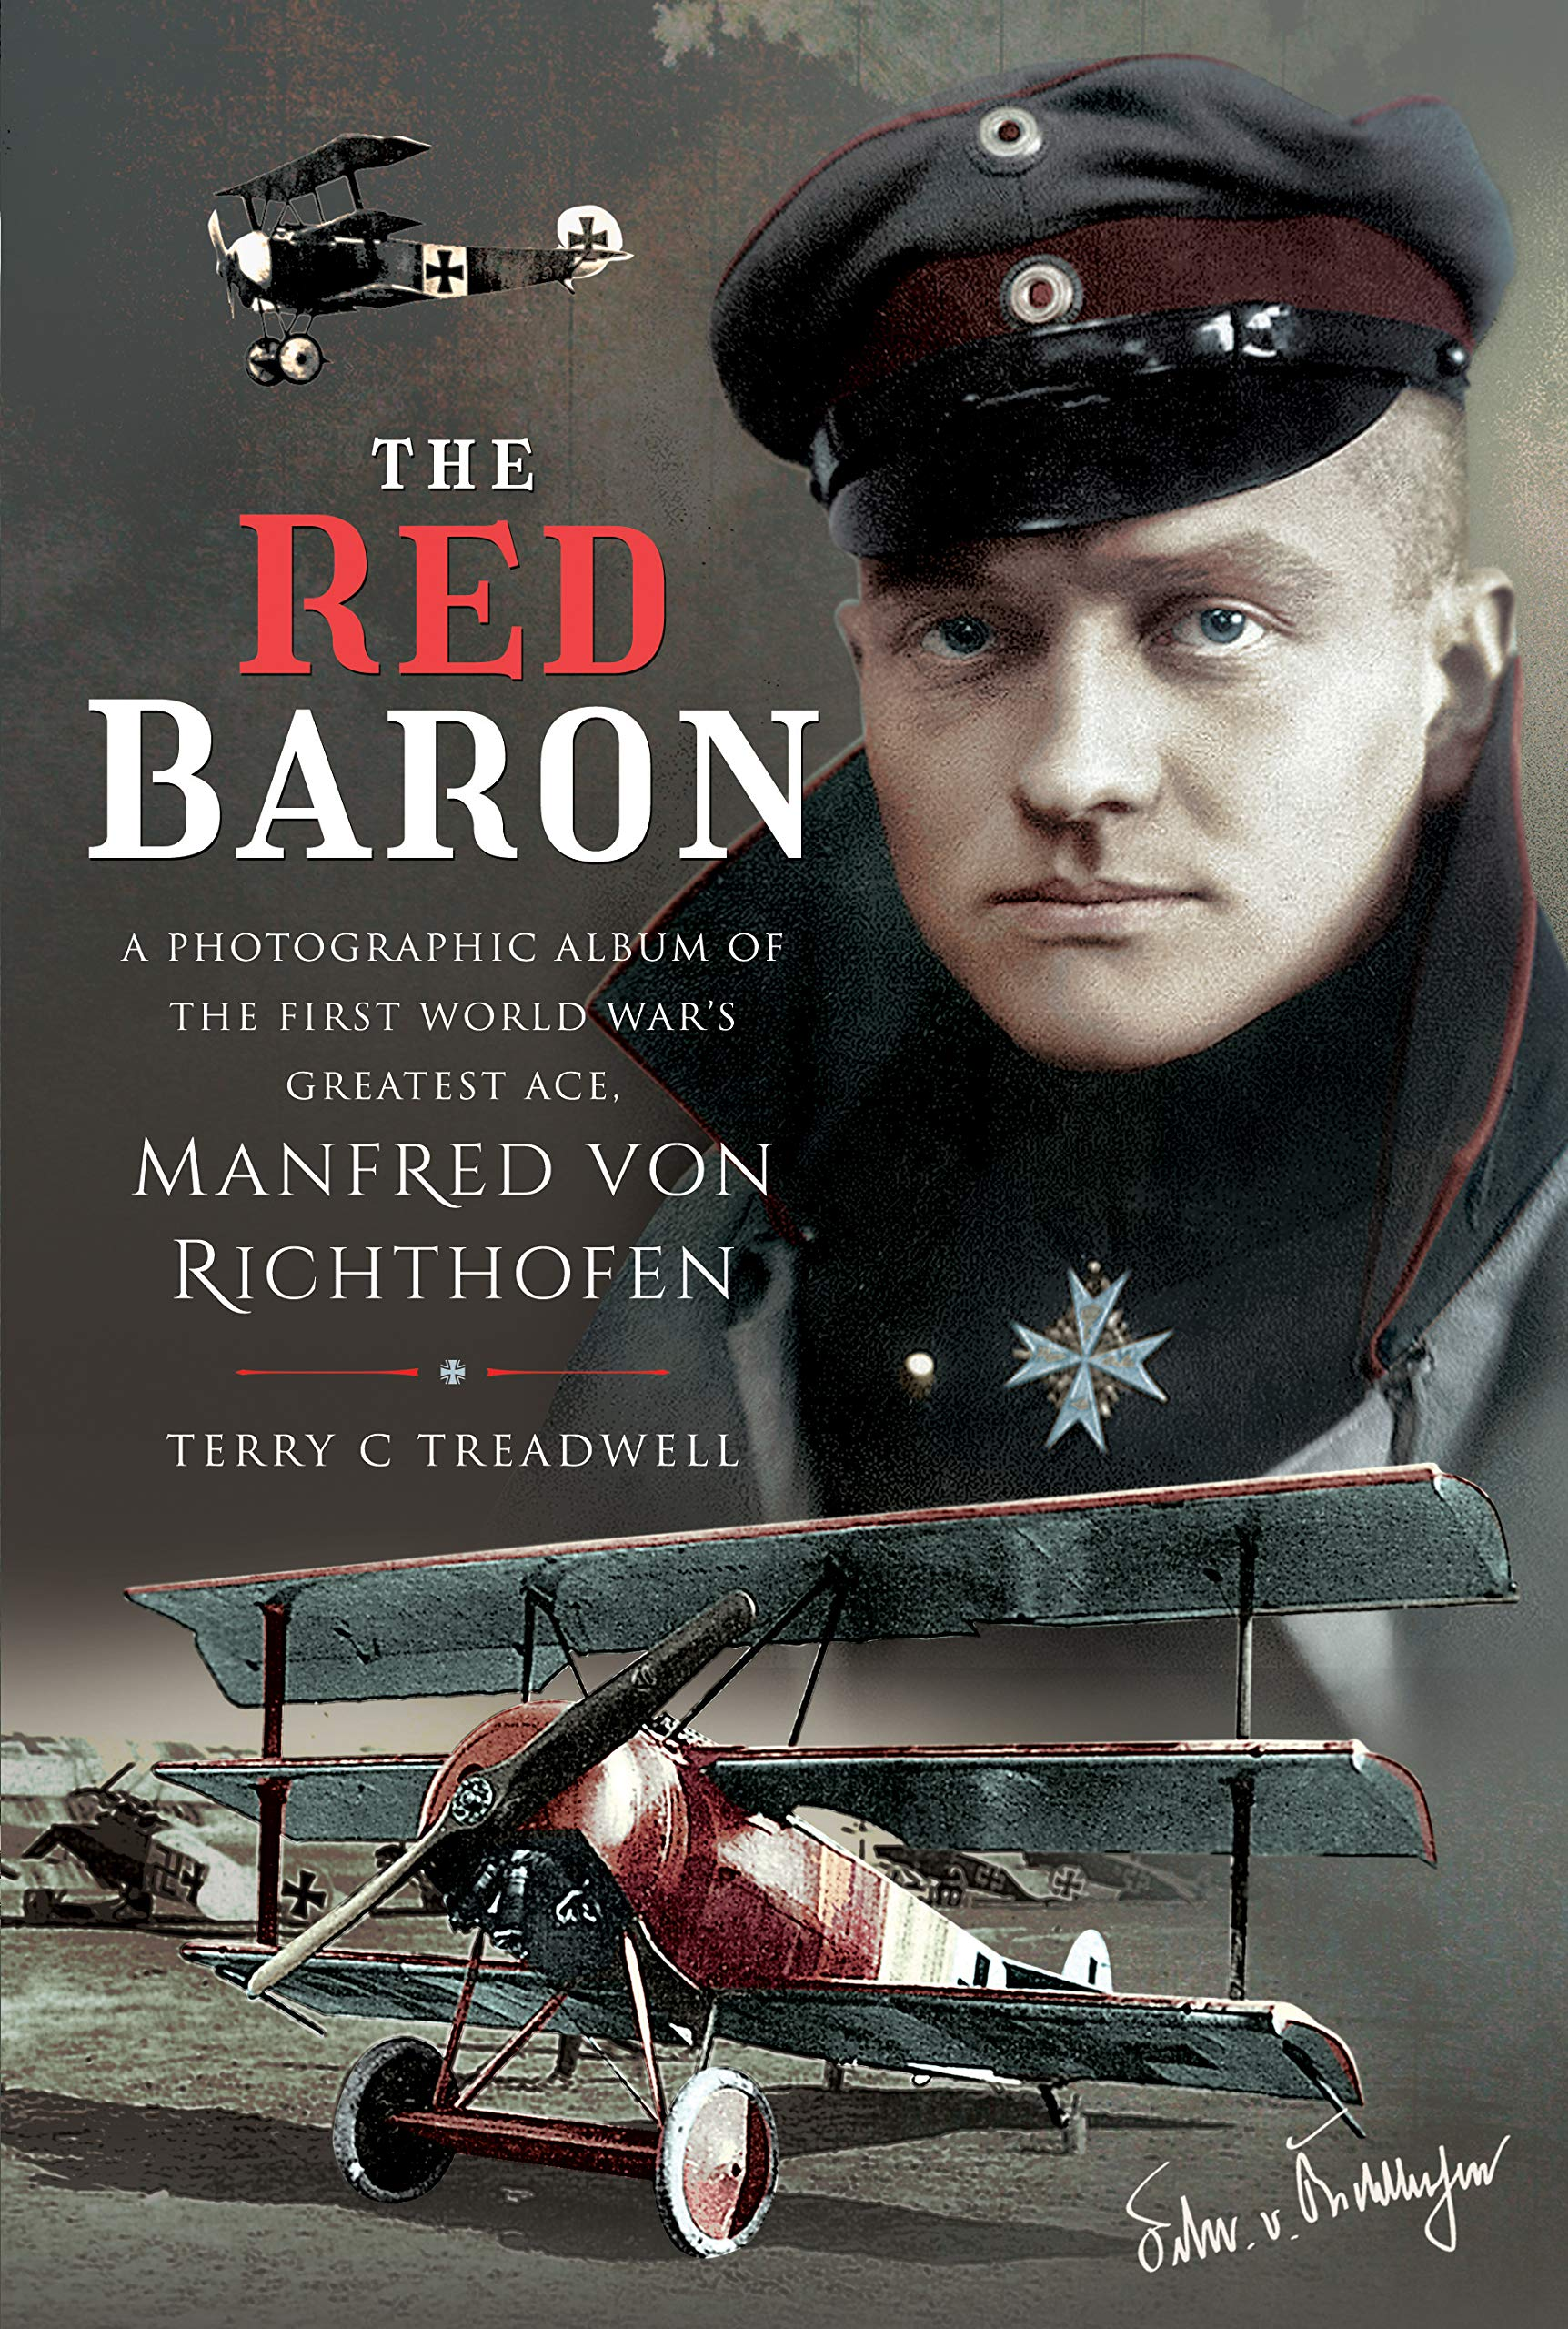 Amazon.com: The Red Baron: A Photographic Album of the First World War's  Greatest Ace, Manfred von Richthofen (9781526781321): Treadwell, Terry C:  Books